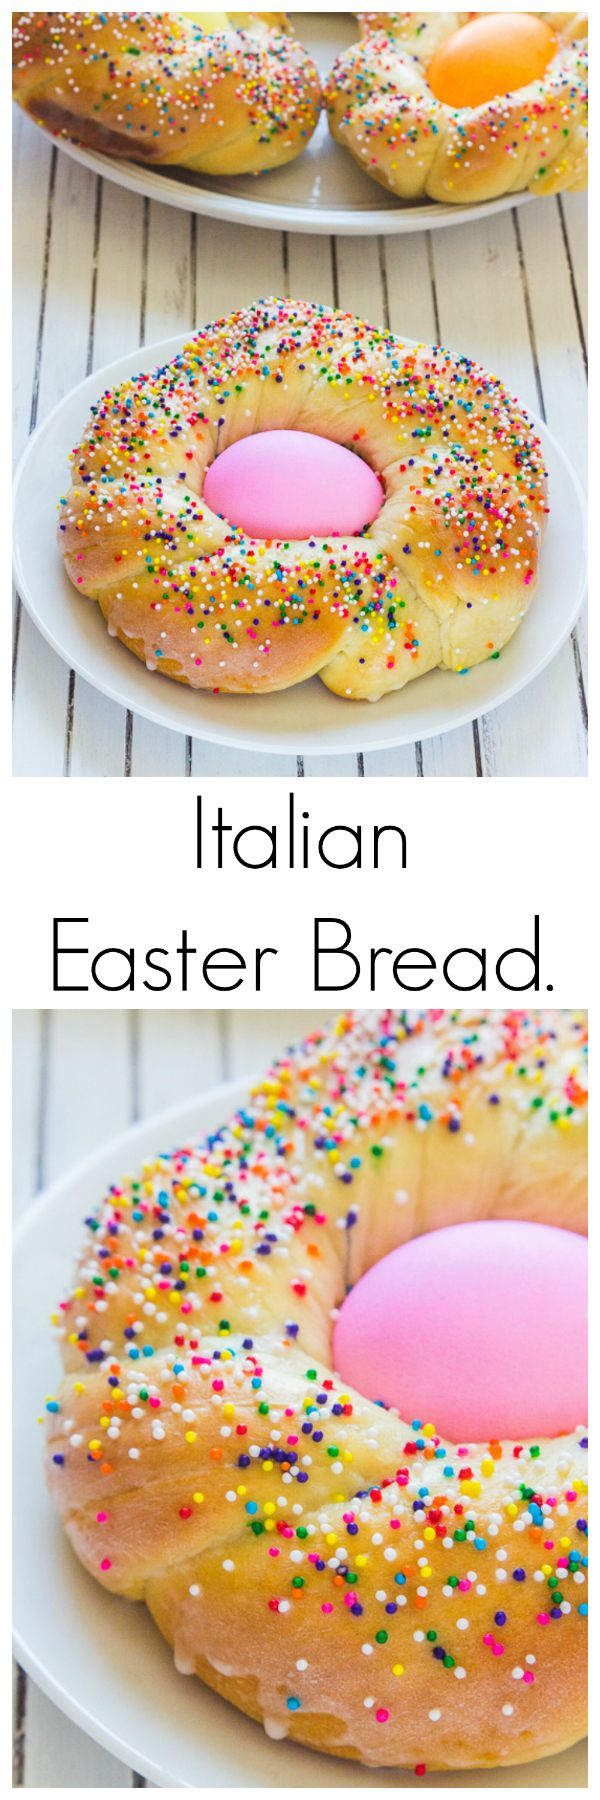 This Italian Easter Bread recipe is as bright and colourful as it is delicious! Perfect for Good Friday :)